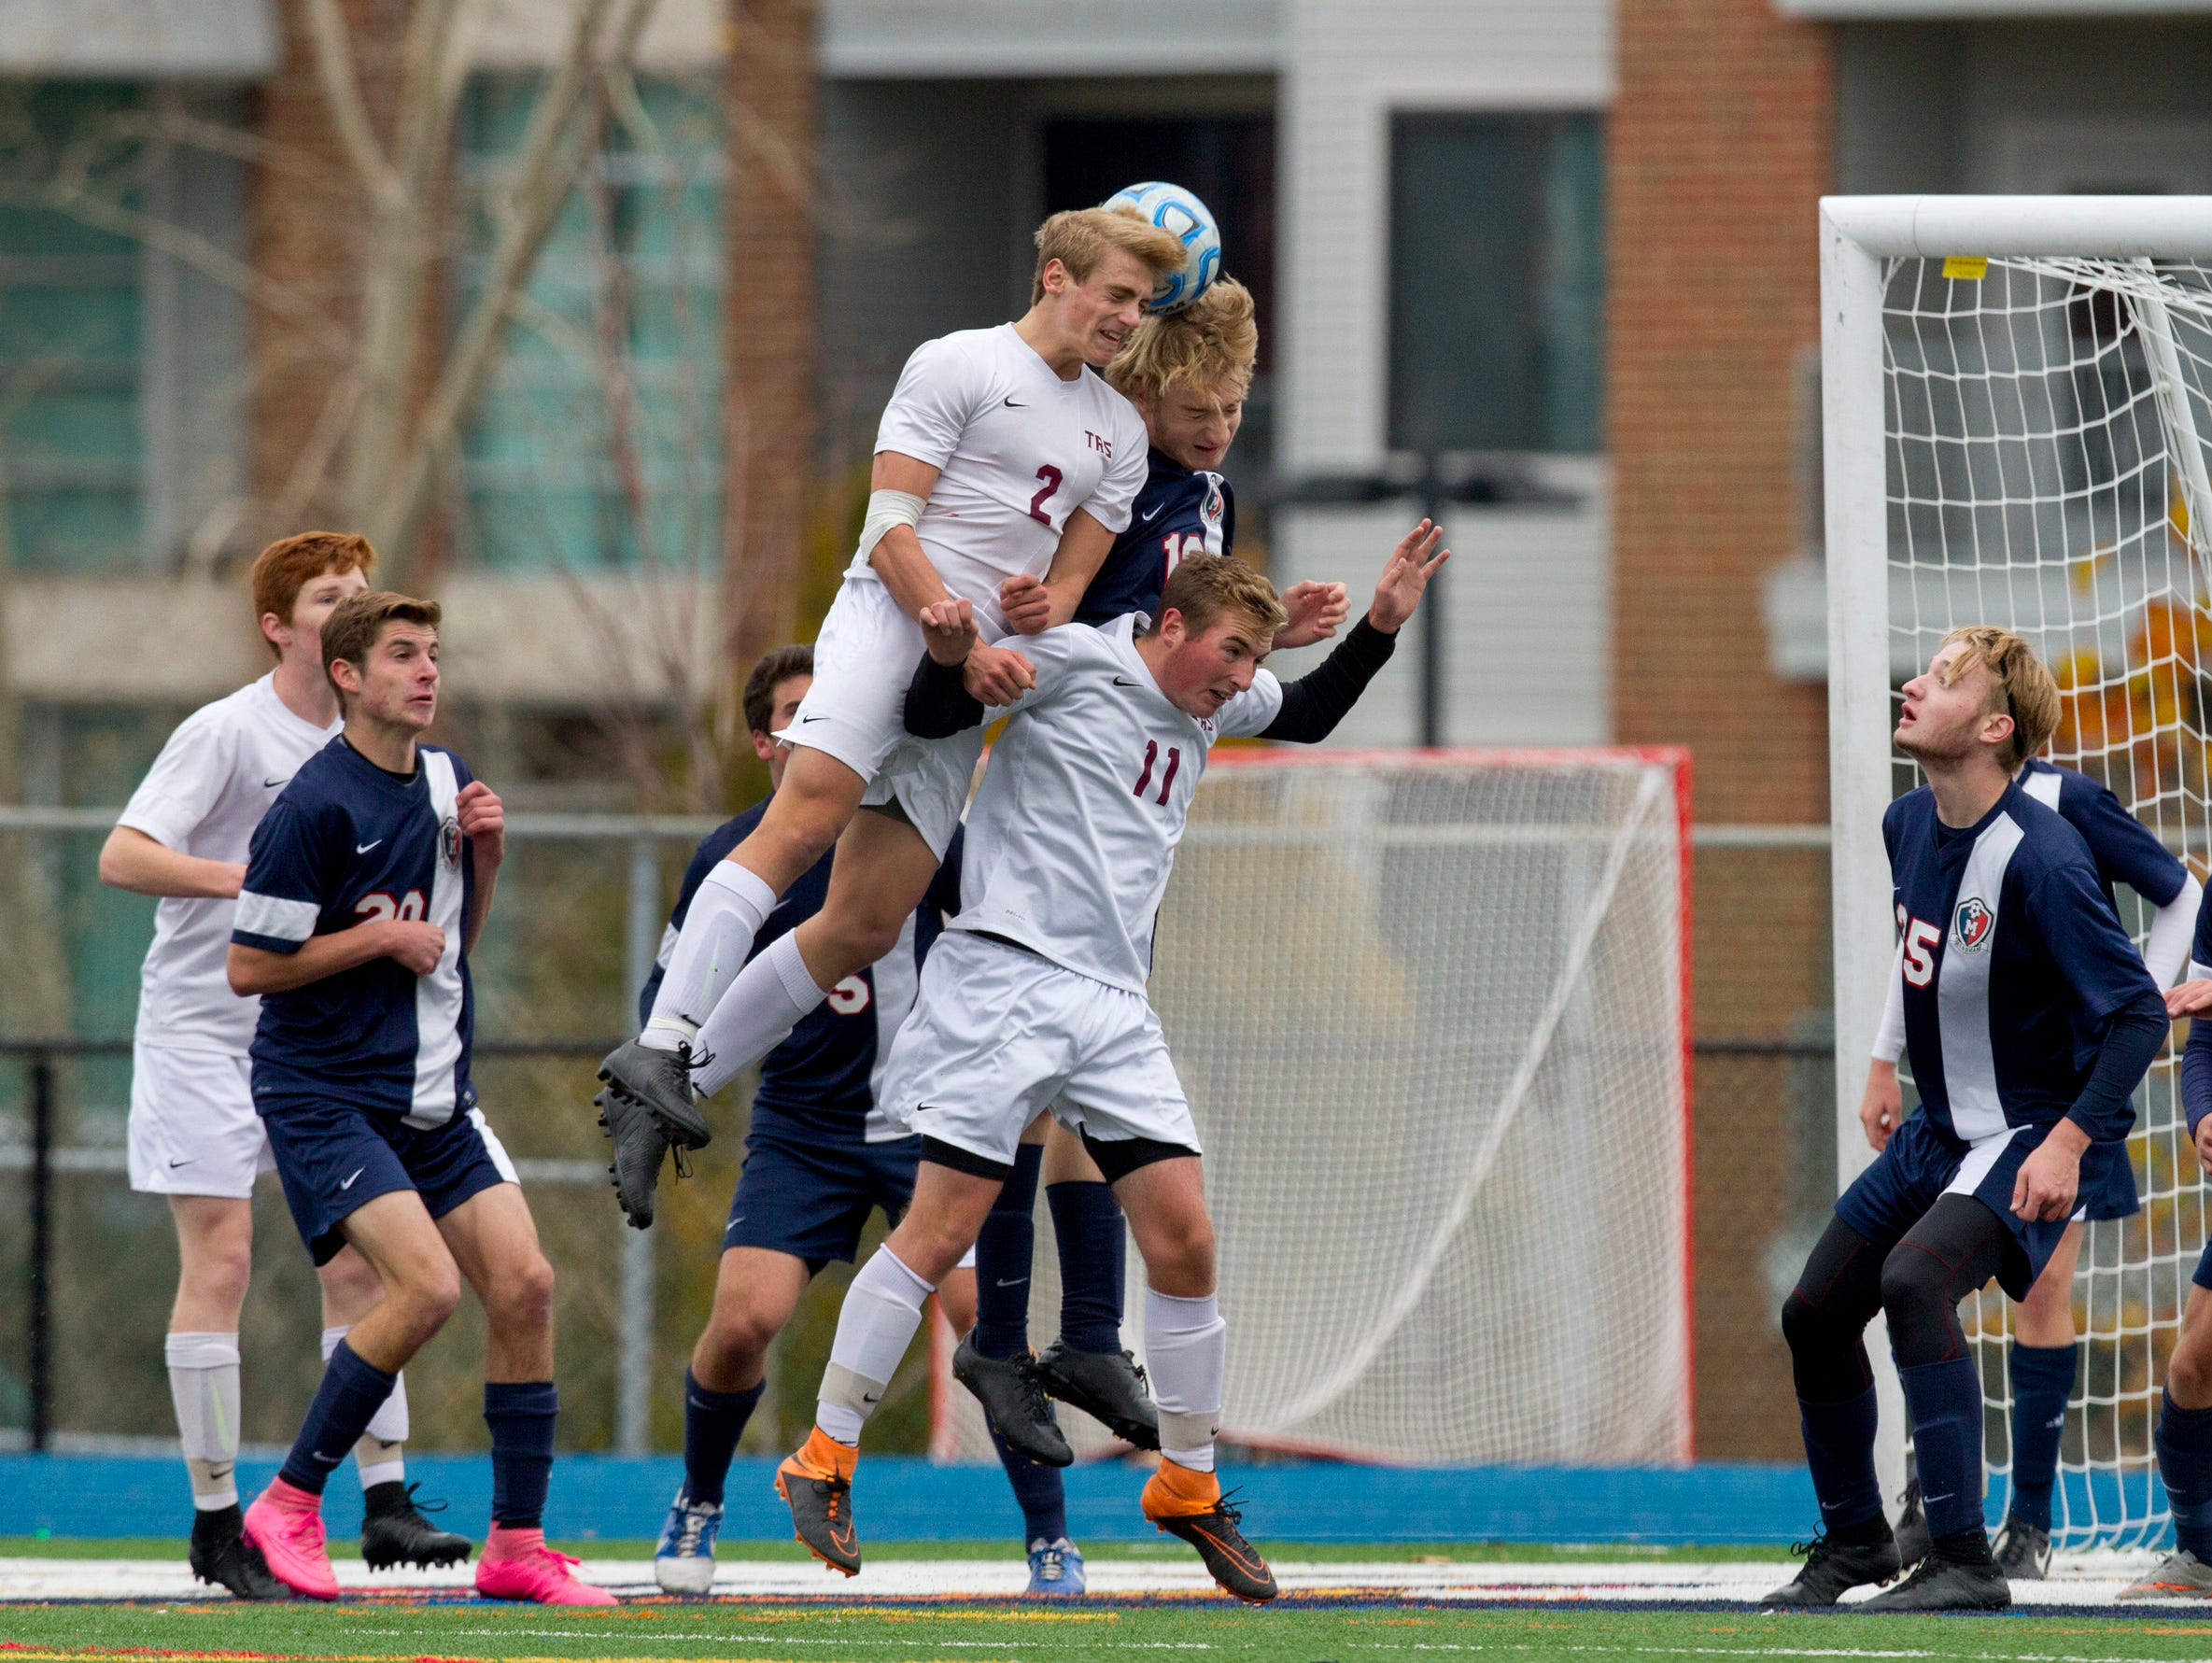 Toms River South's Dylan Parks tries to head the ball into goal. Toms River South Boys Soccer vs West Morris Mendham in NJSIAA State Group III Championship at Kean University on November 22, 2015 in Union, NJ.